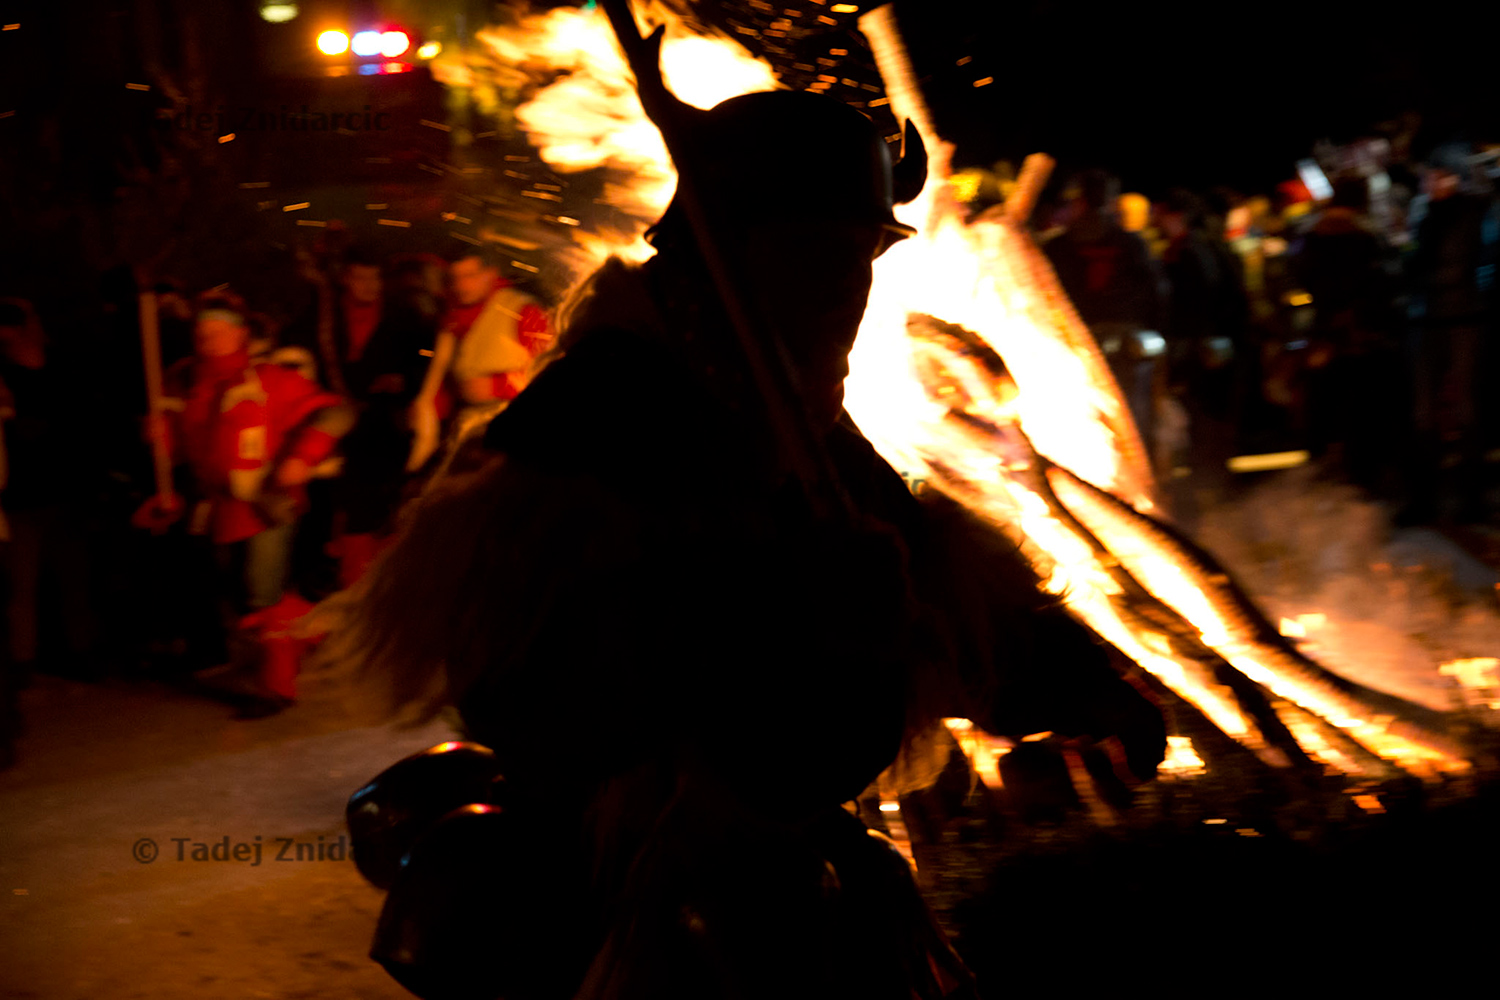 The celebrations kicked off at midnight on February 2nd with an event called 'Korant's jump'. Hundreds of koranti came to run and jump around a huge bonfire. They were not wearing the head mask yet.